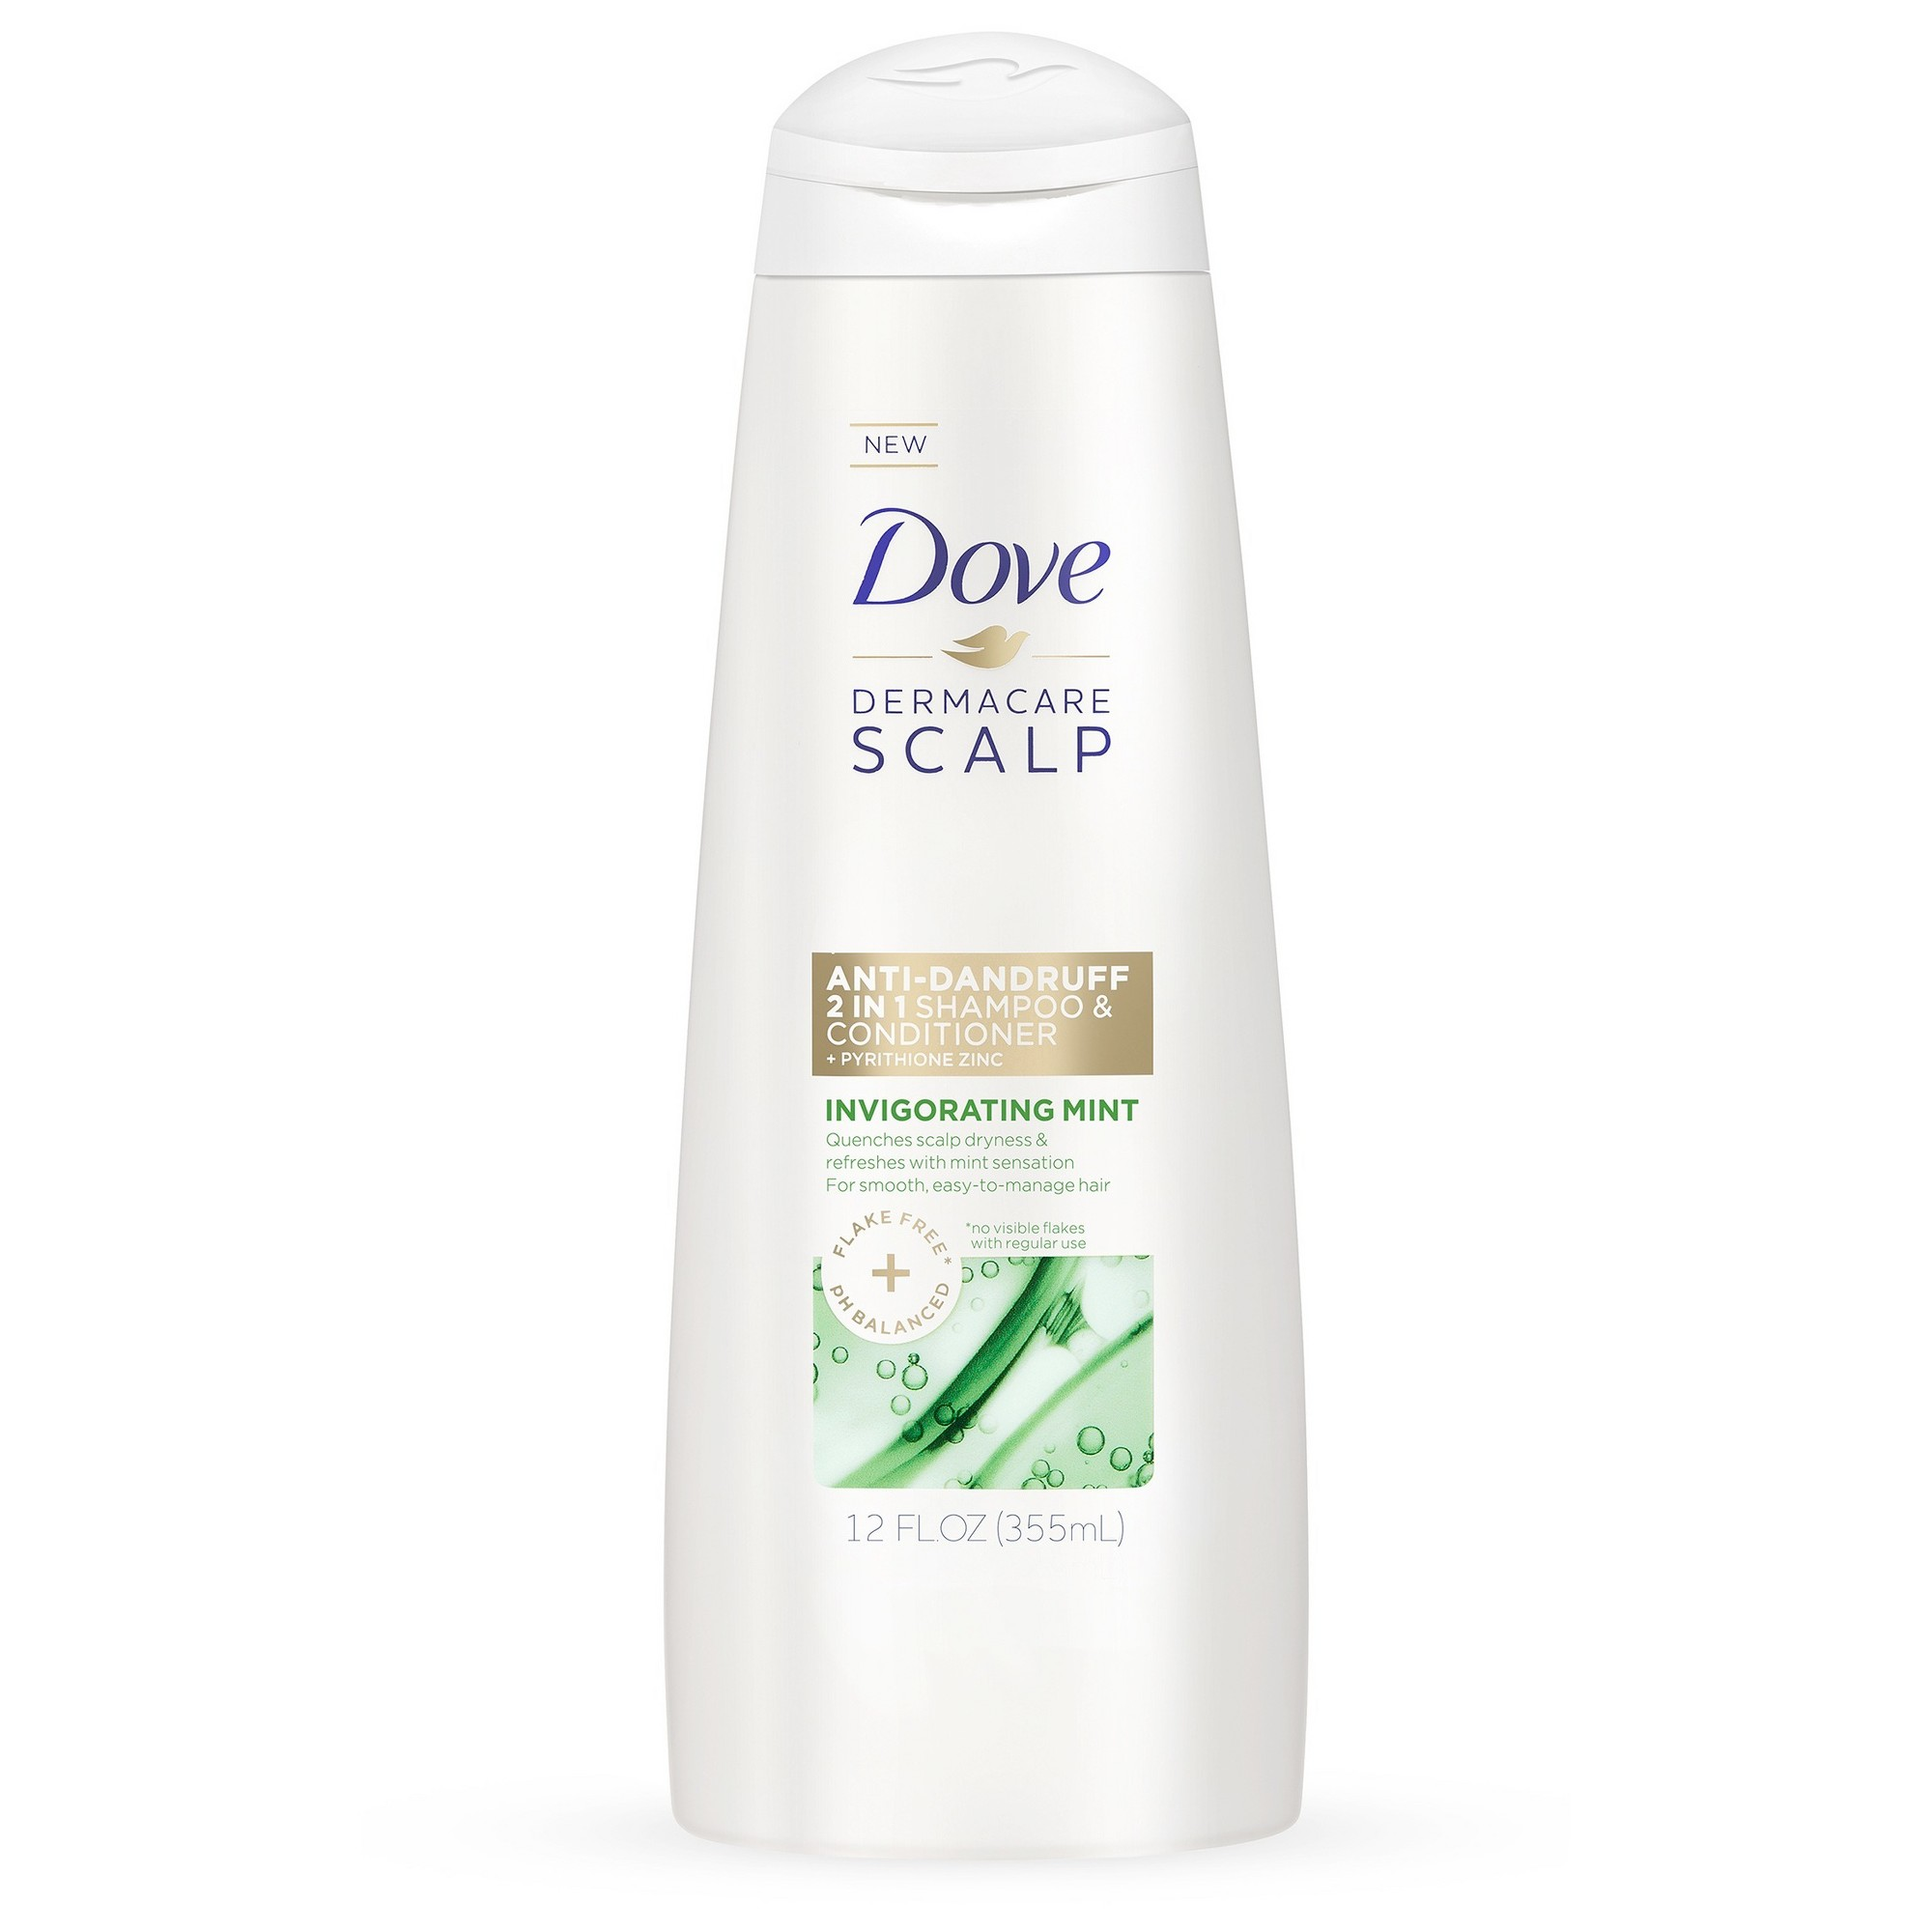 What S With Dove Dove Intensive Repair Shampoo Will Not Just Helps You To Rejuvenate Damaged Hair But Also Target Dryness Dove Shampoo Shampoo Reviews Shampoo